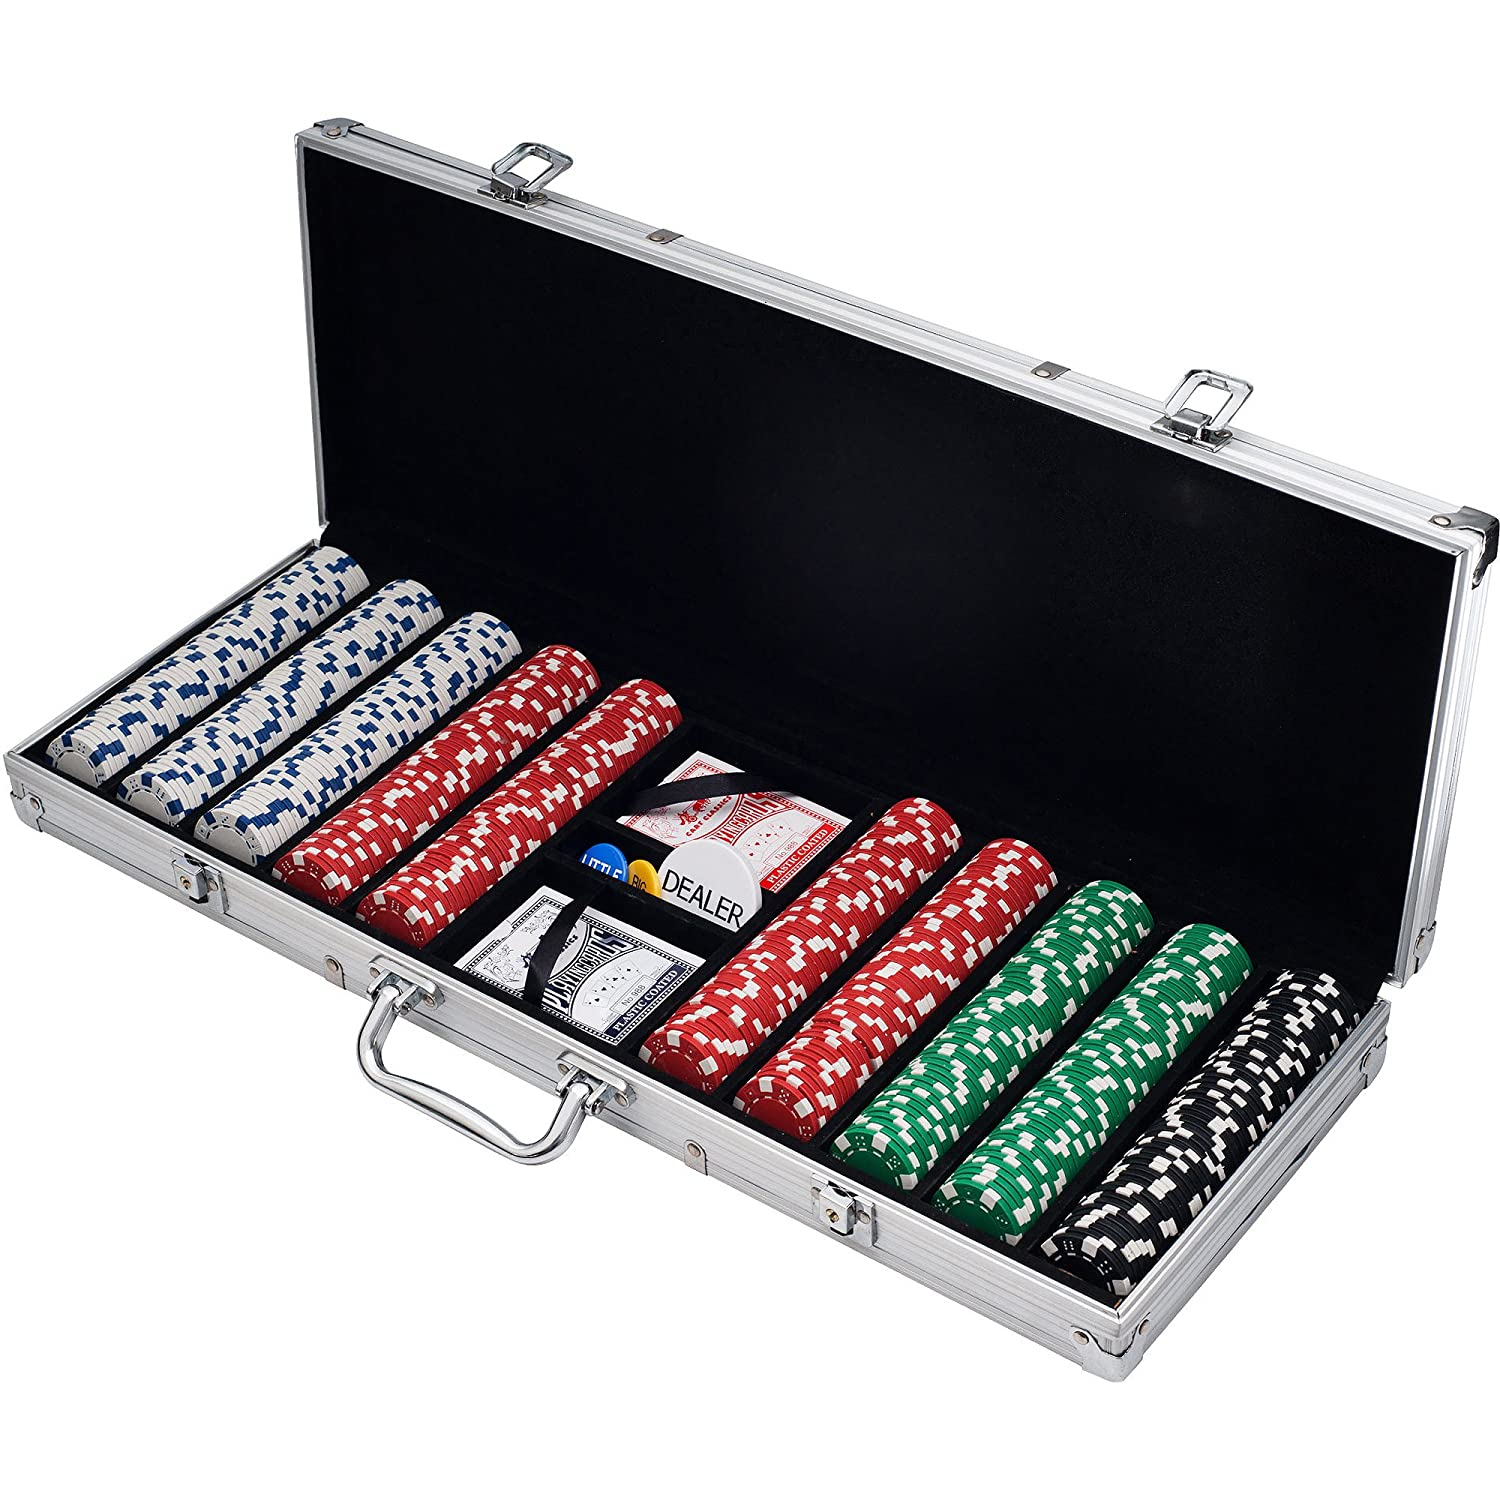 500 Diceスタイルカジノ重量Poker Chipセット B00OFNJ4S2 500 Chipセット B00OFNJ4S2, オマケ des shoes and bag:39bf0a4f --- itxassou.fr